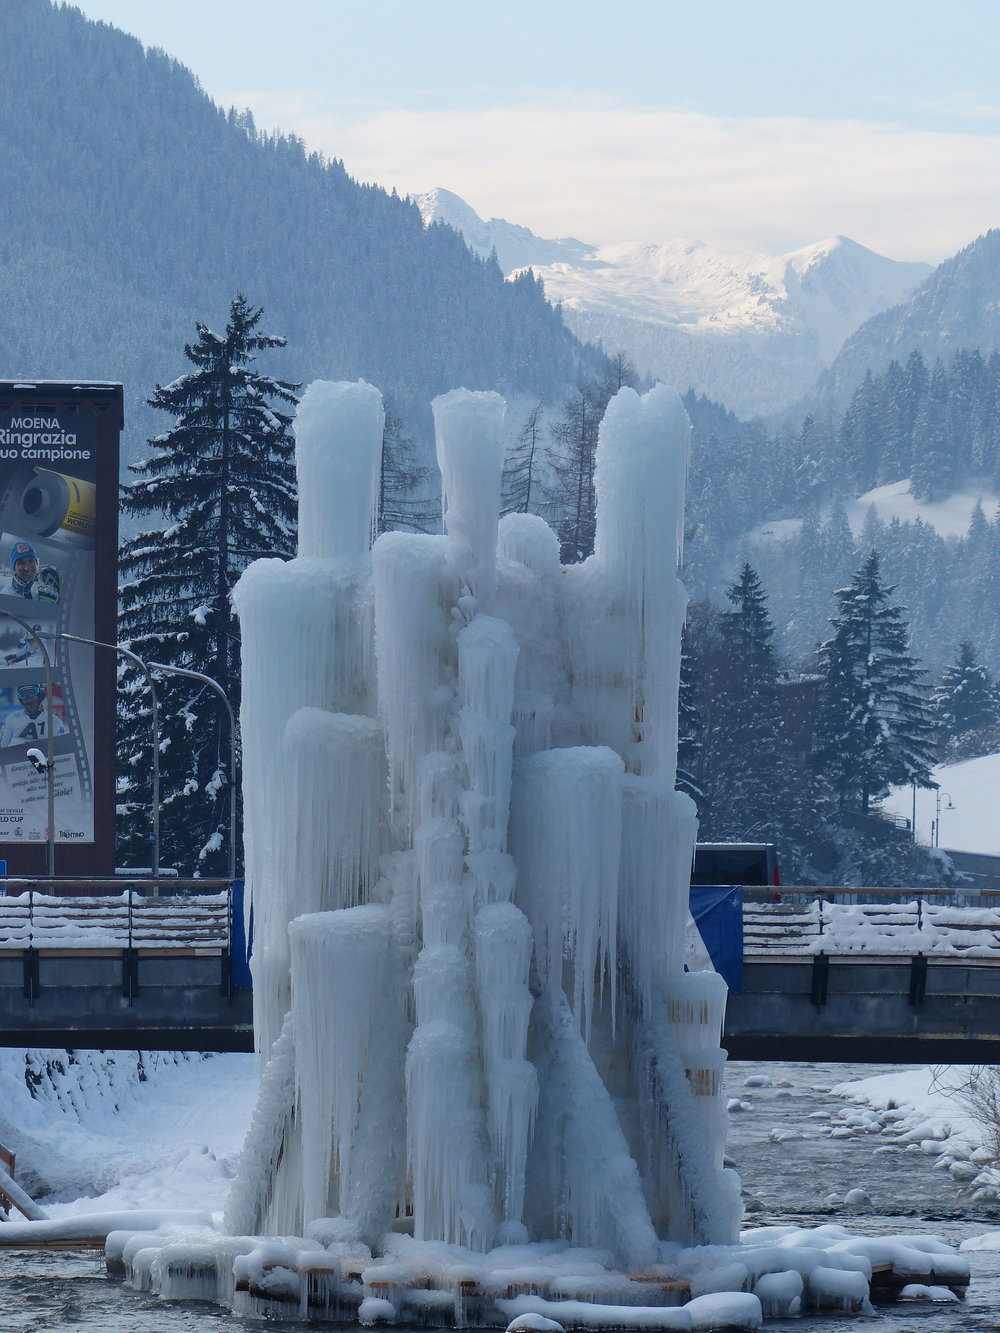 Ice art (constantly changing due to the water trickling from the top) in Moena, italy